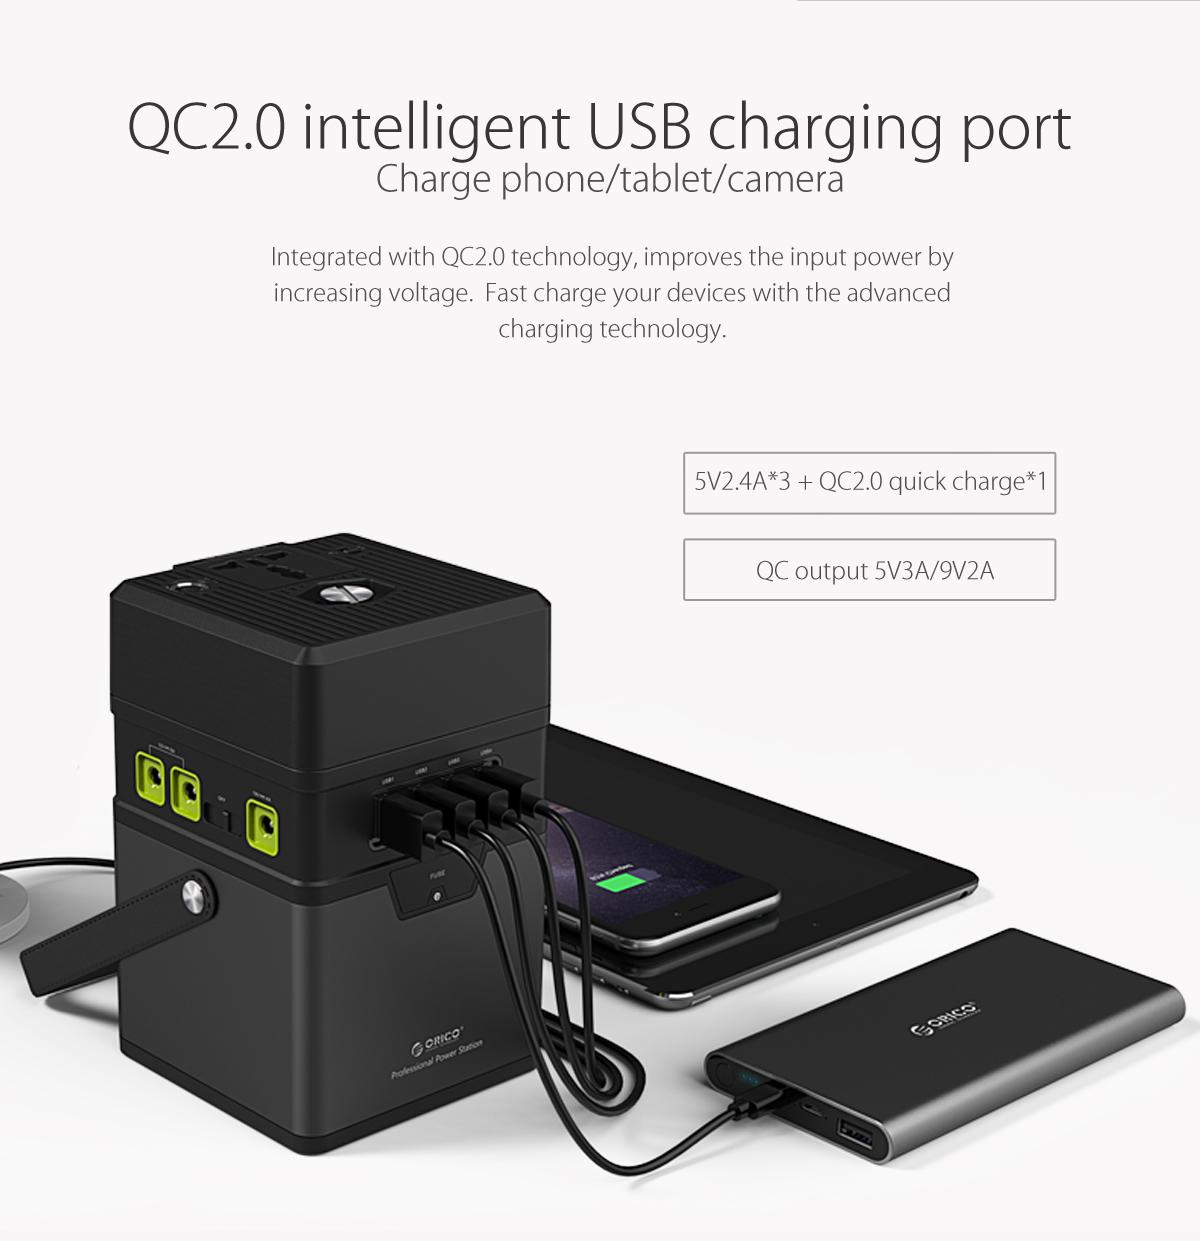 QC2.0 intelligent USB charging port